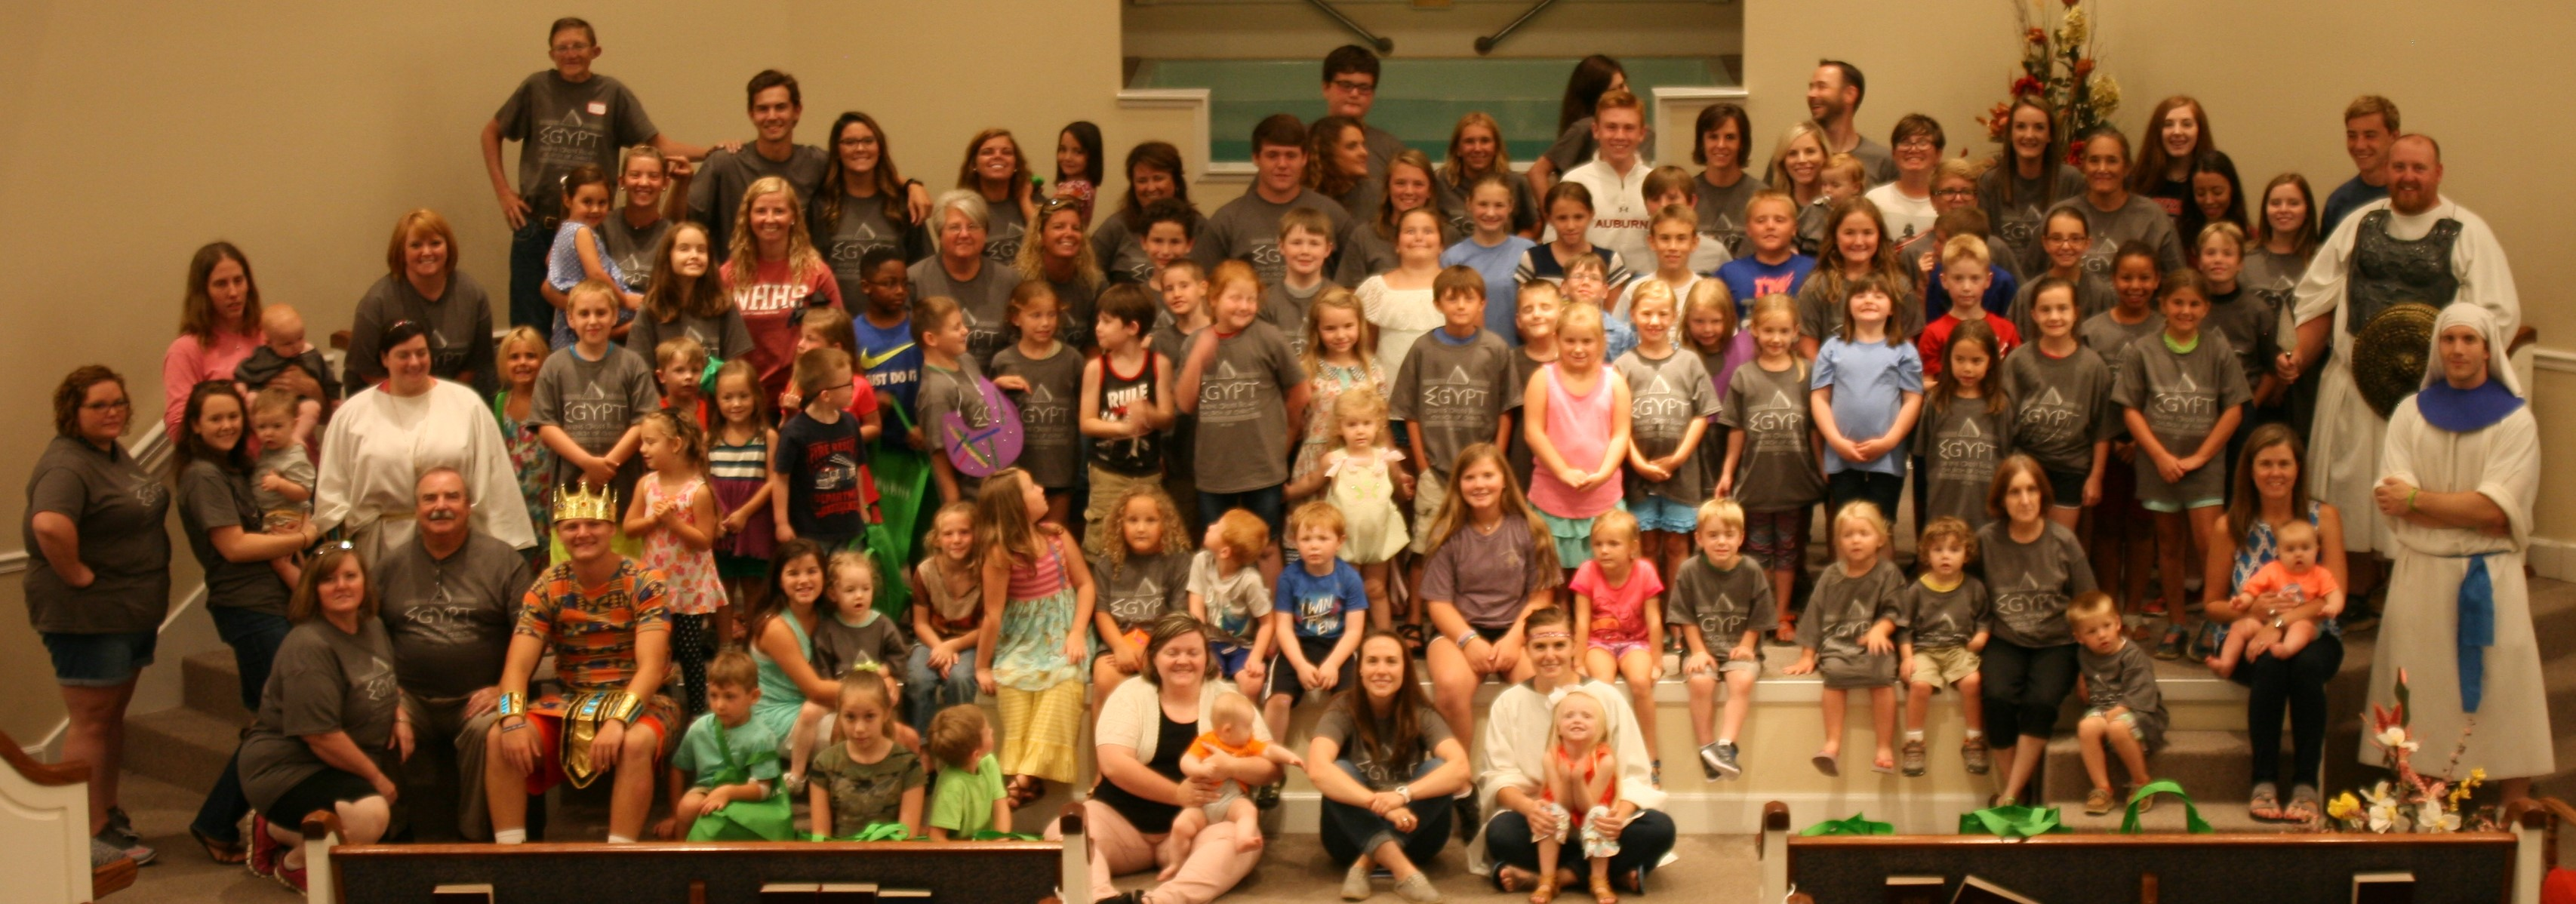 VBS-2016-Group-Pic-1